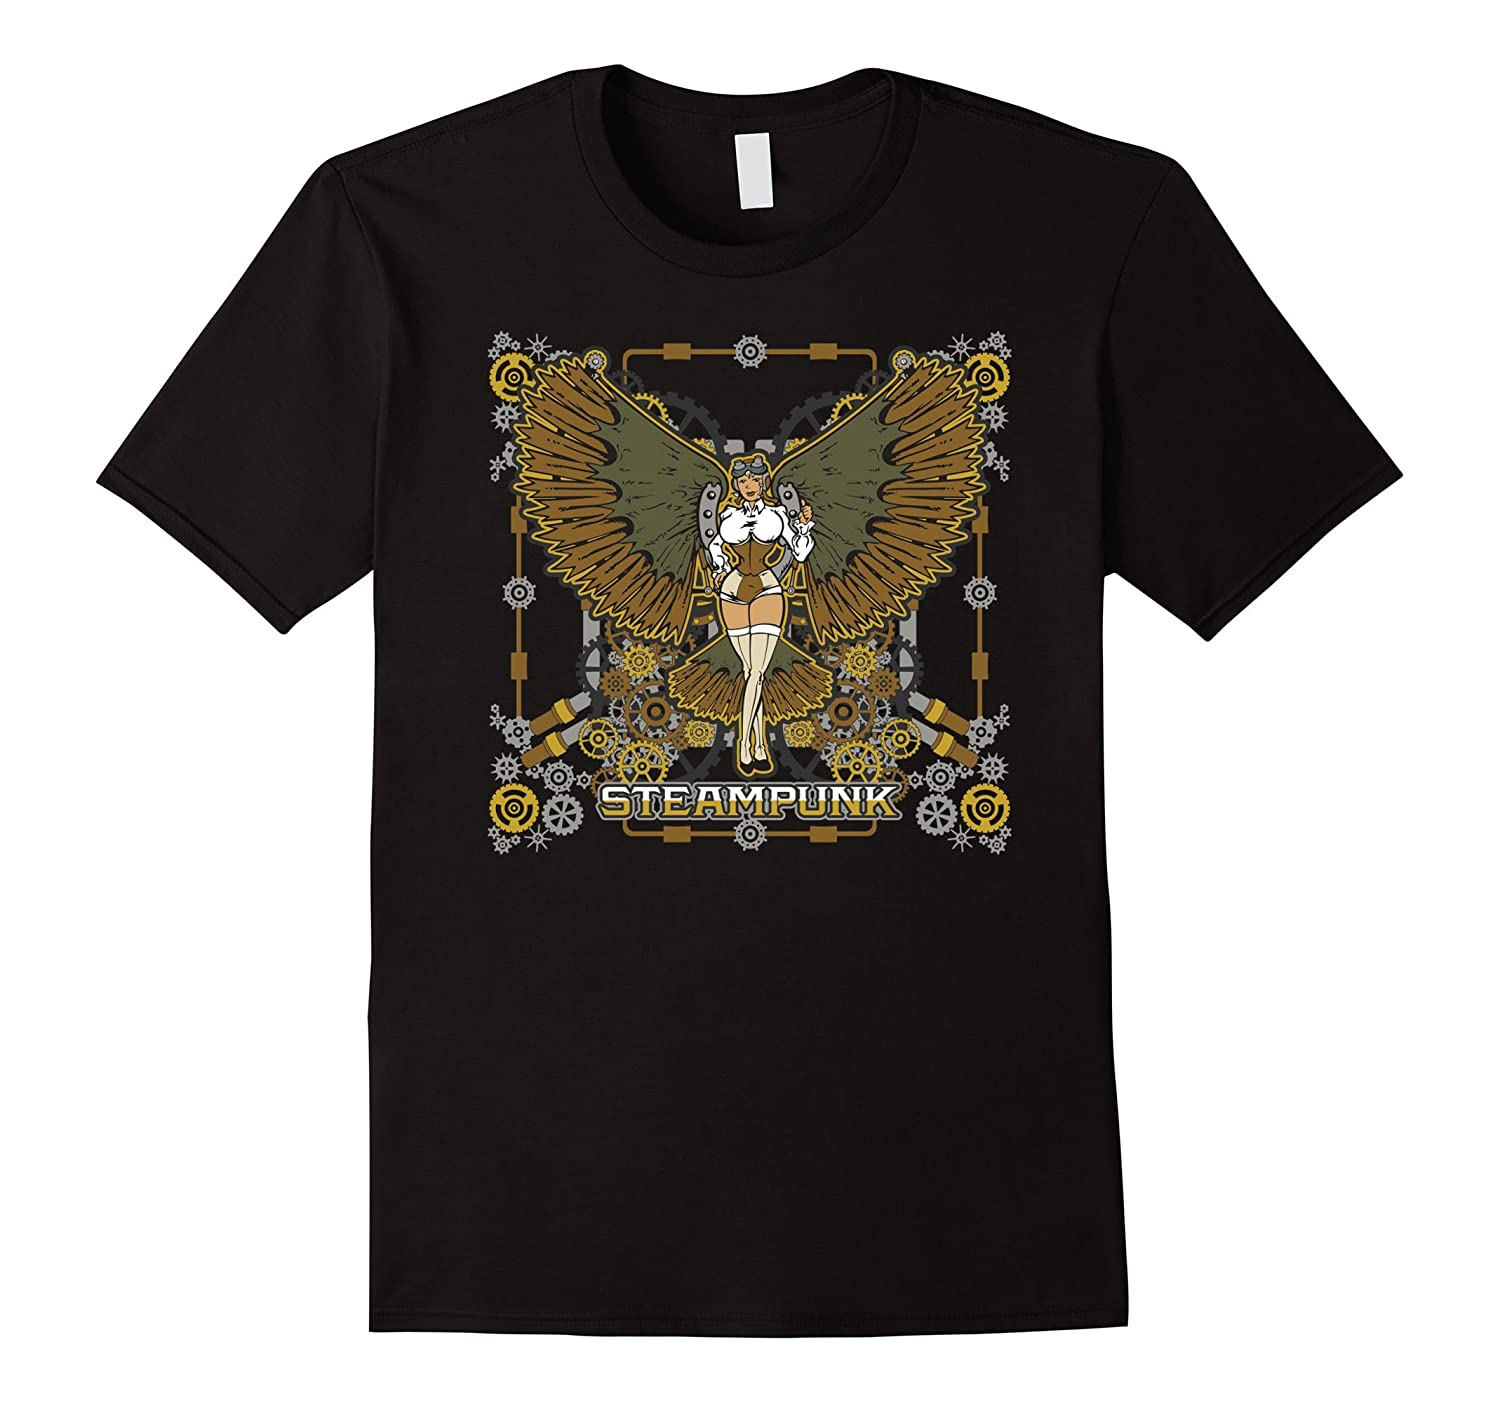 Steampunk Woman with Mechanical Wings T-shirt